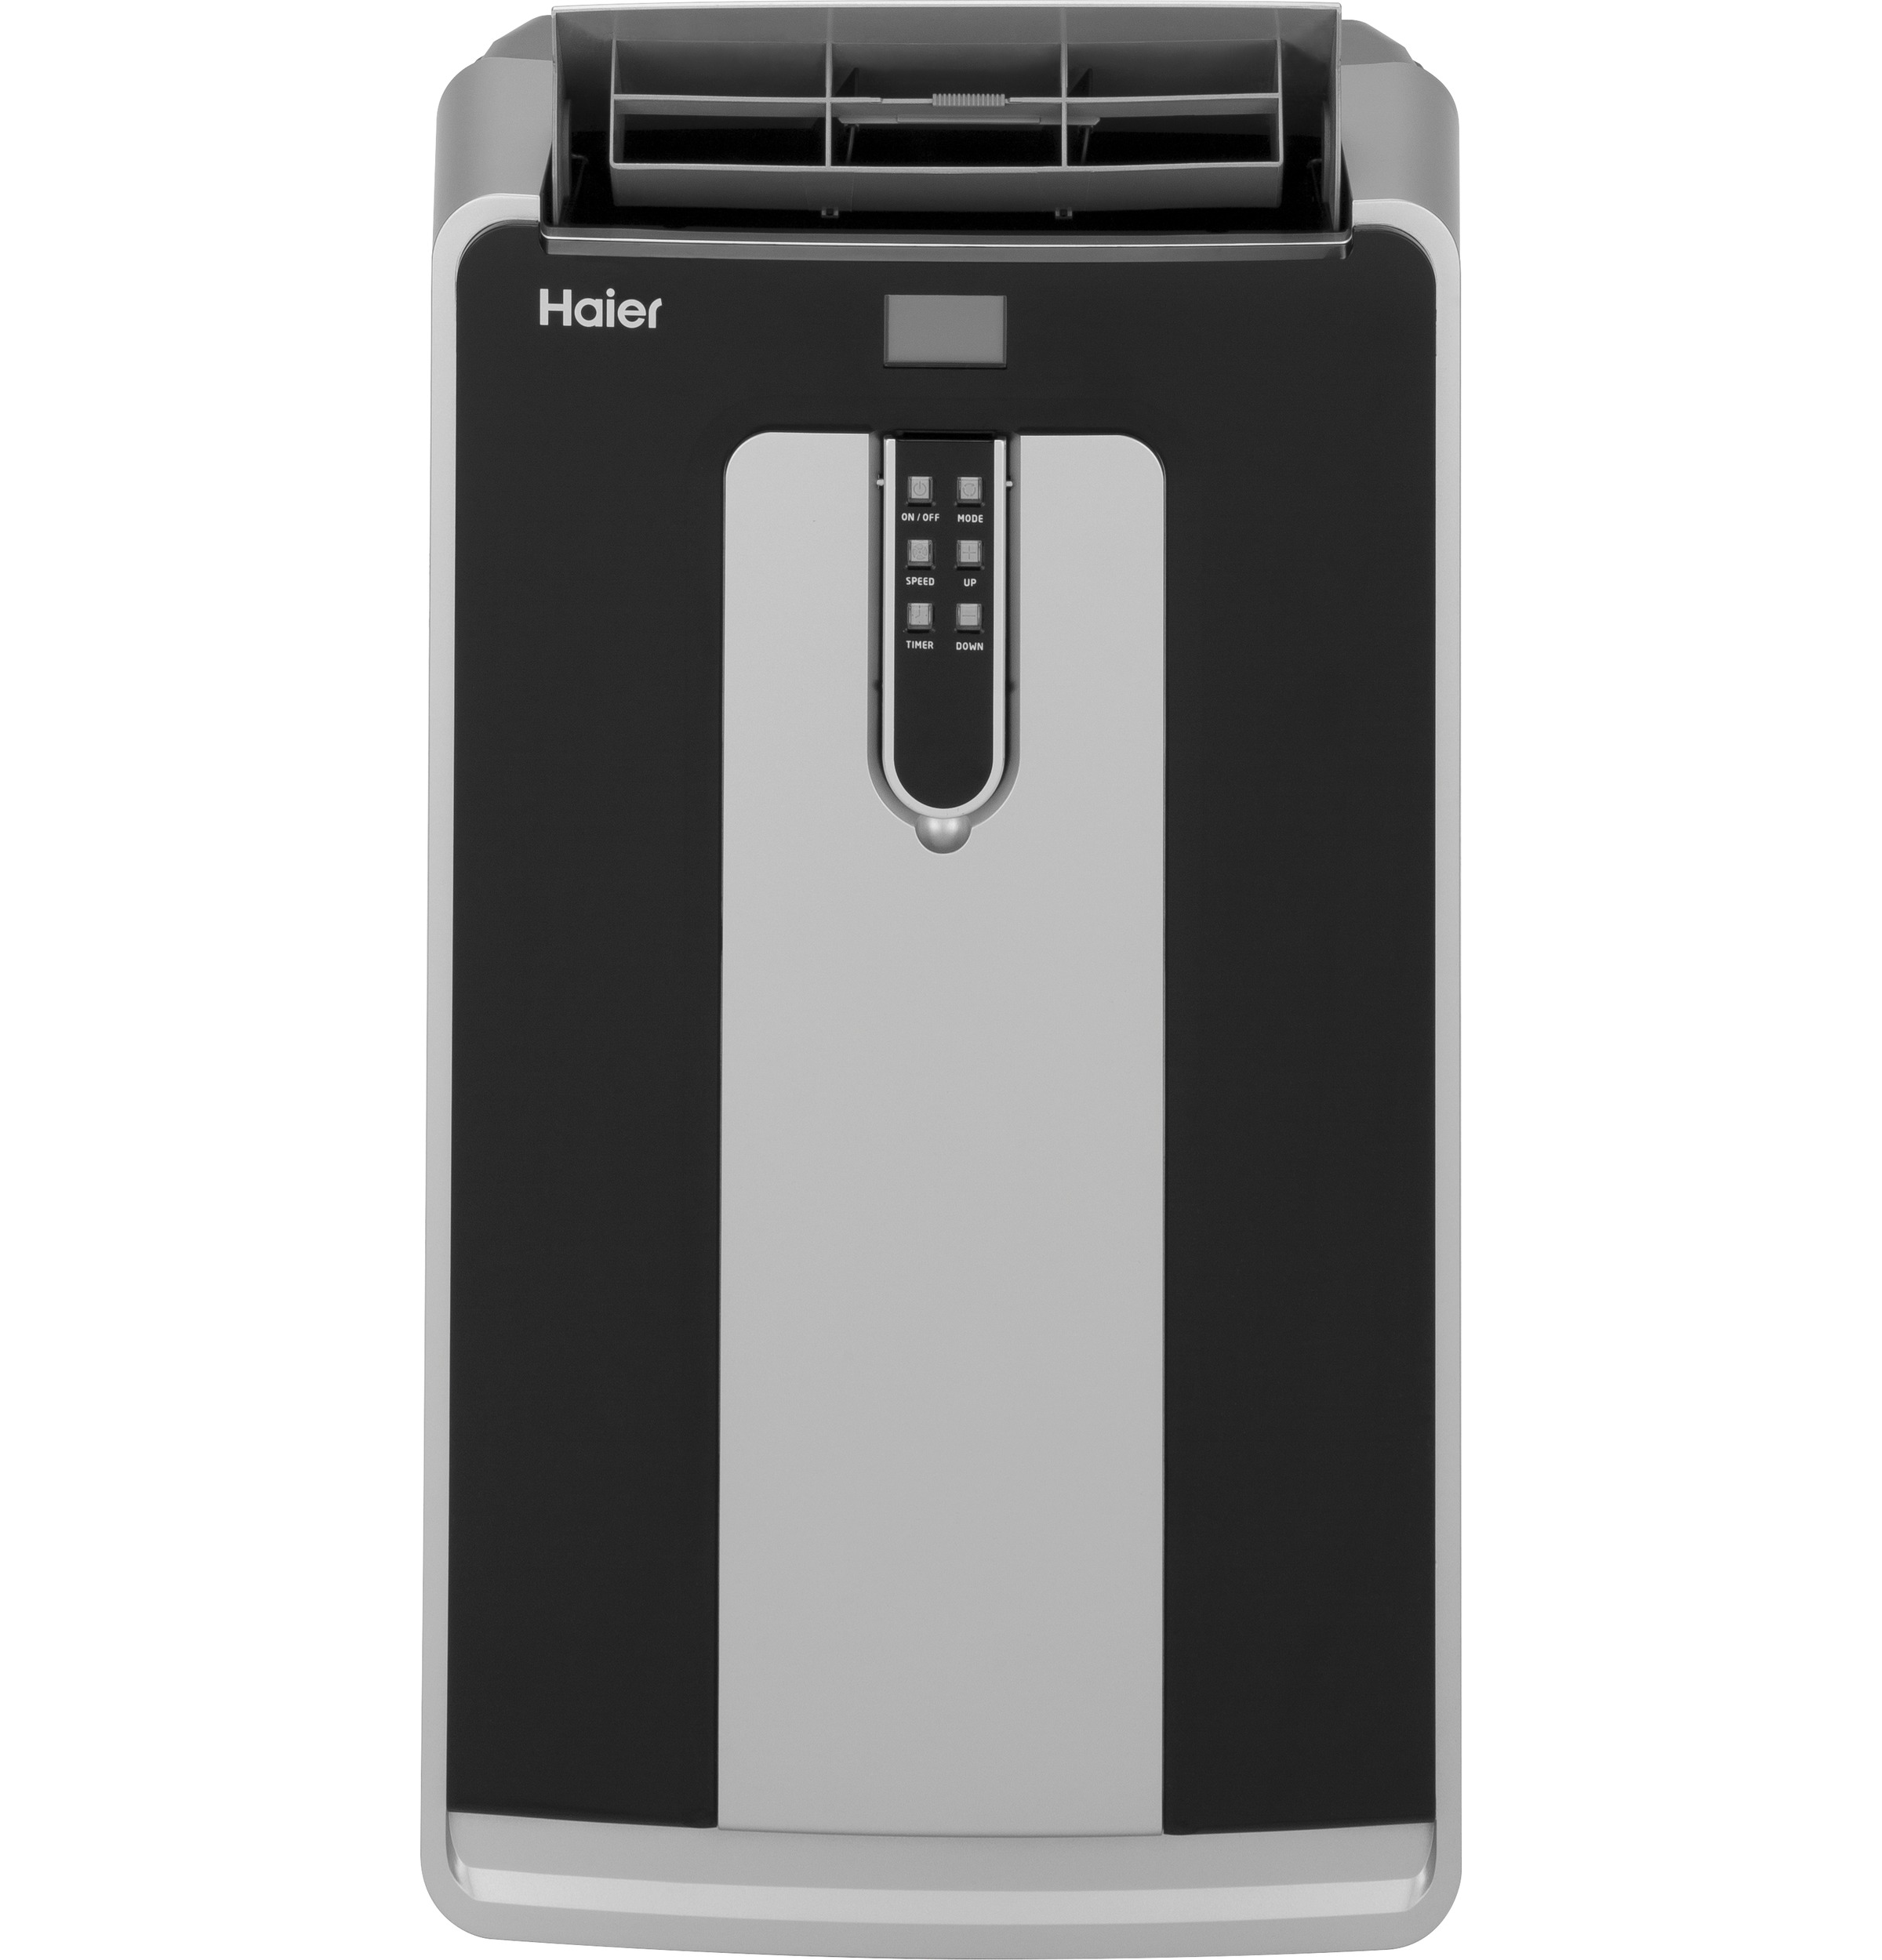 Haier Portable Air Conditioner with Heat - Dual Hose